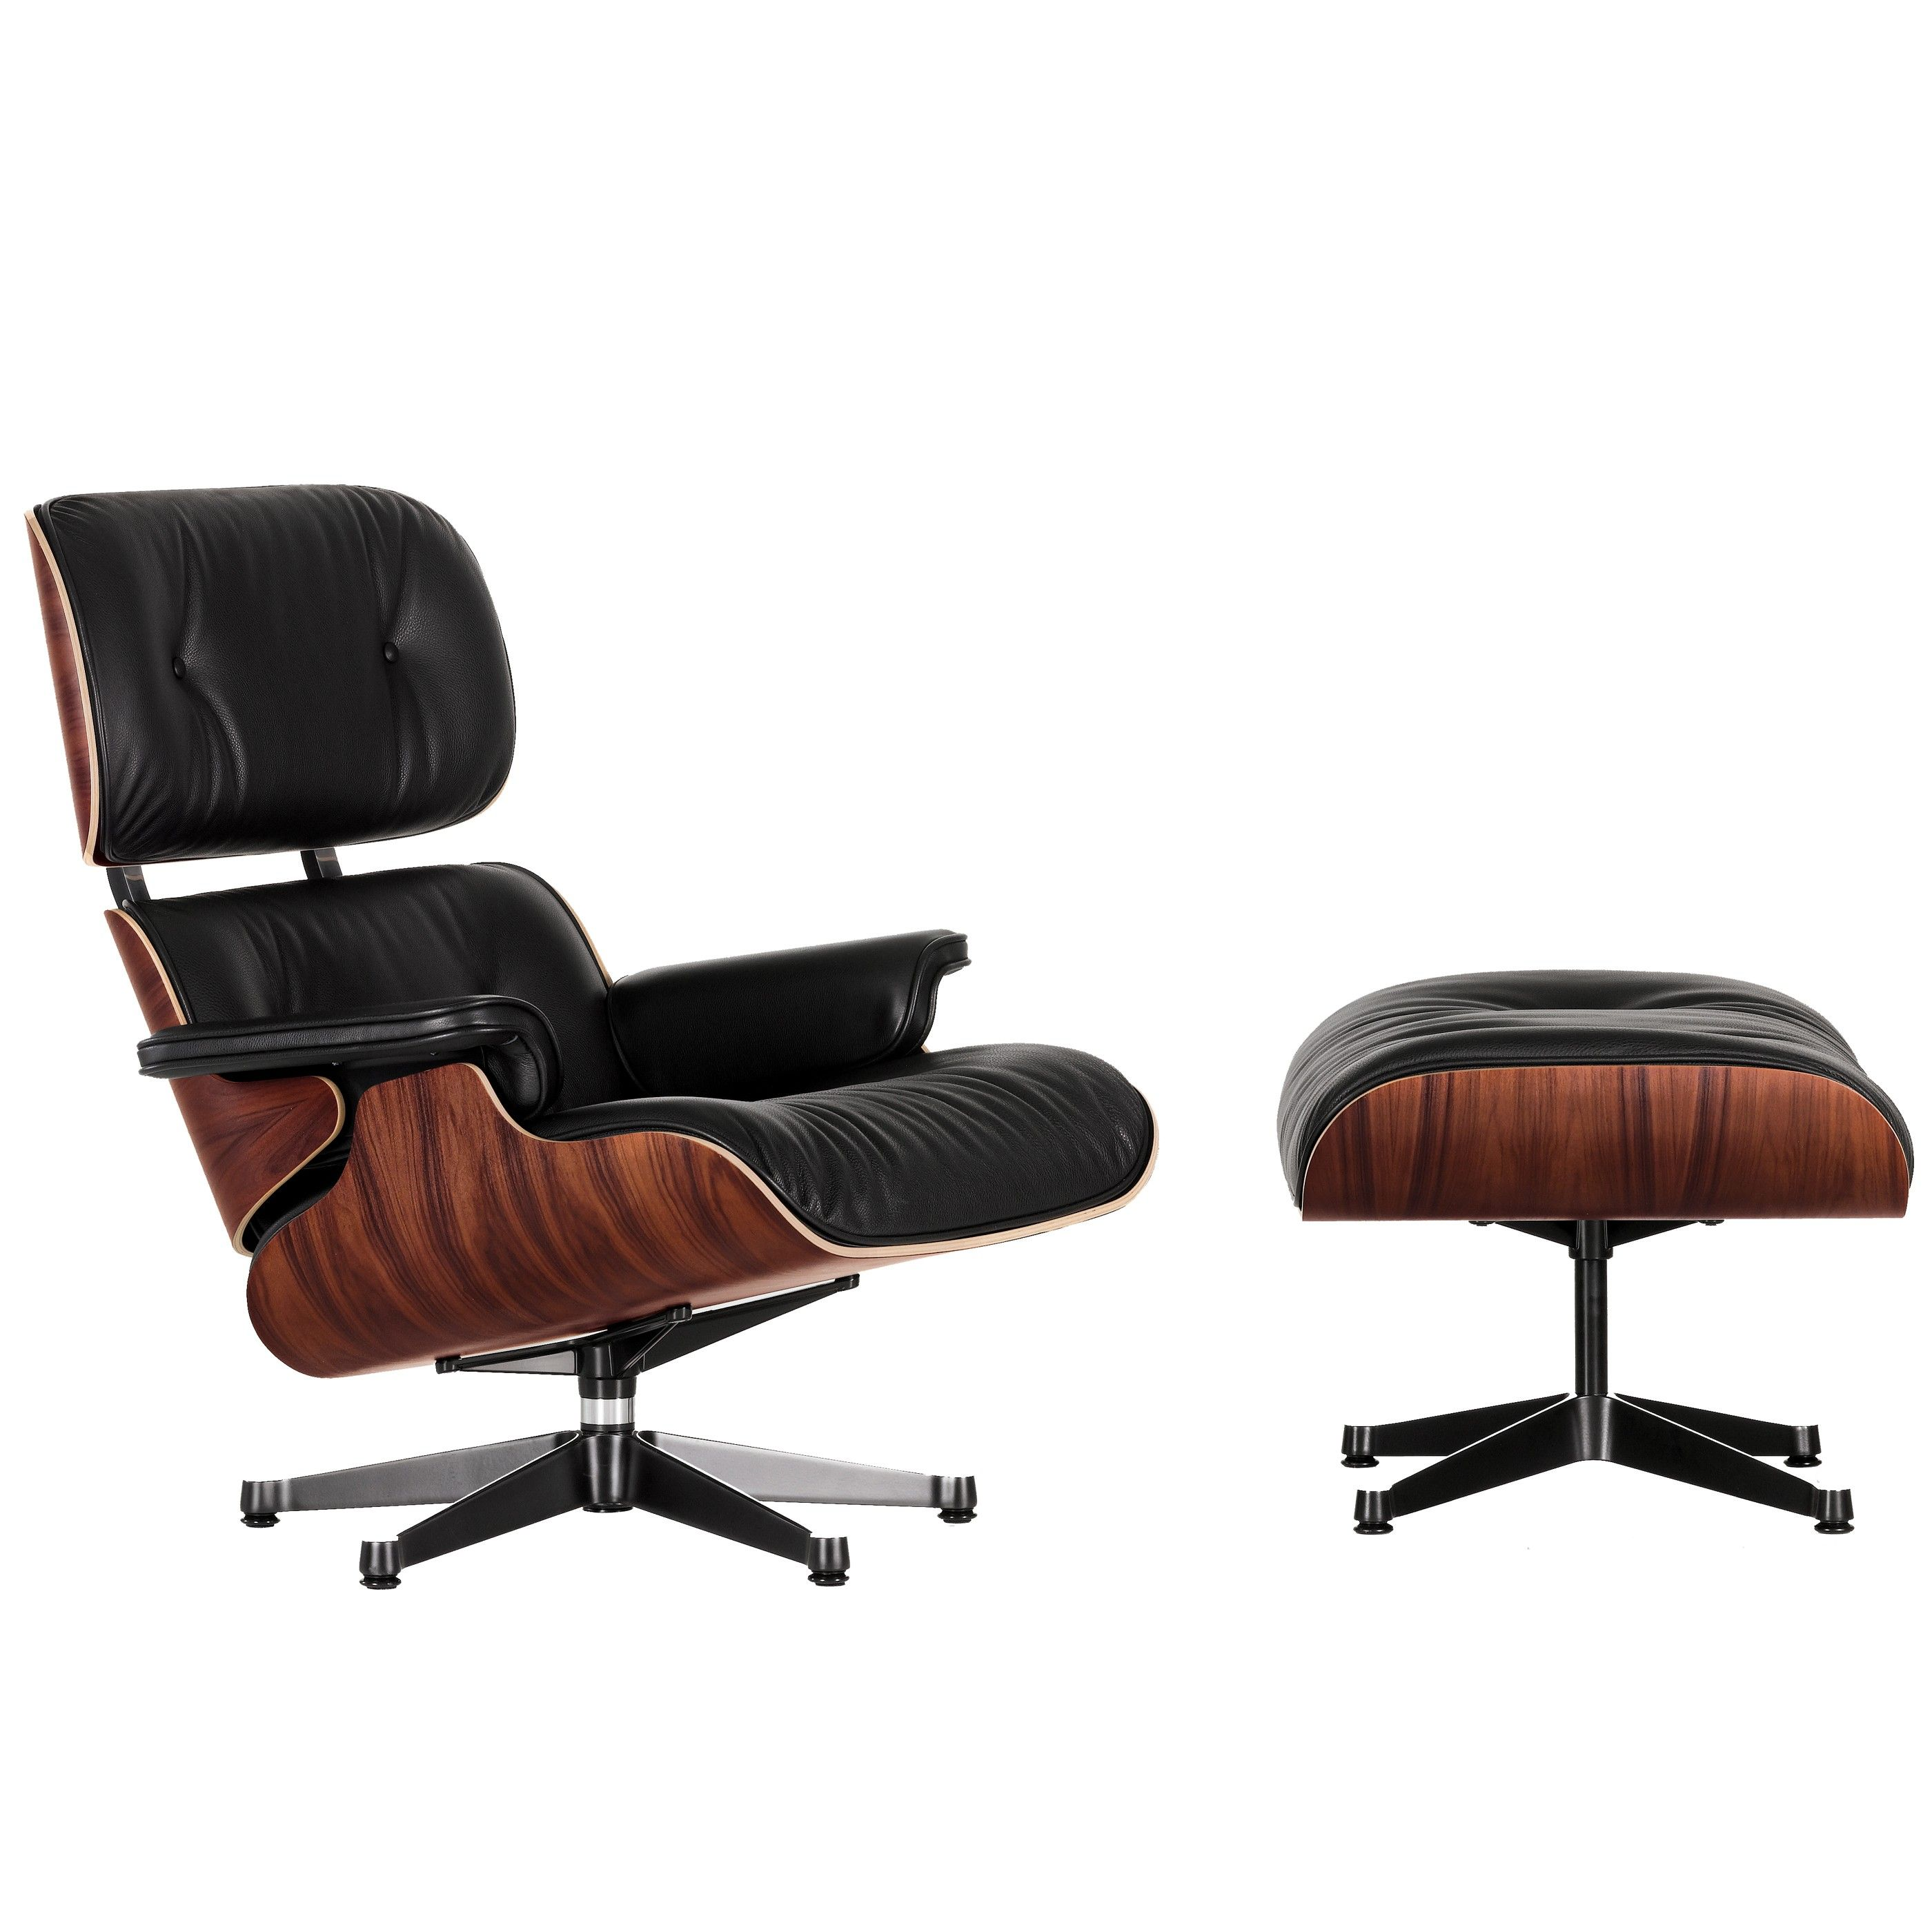 Sessel Aus Holz Vitra Eames Lounge Chair Sessel Mit Ottoman Chocolate Flinders